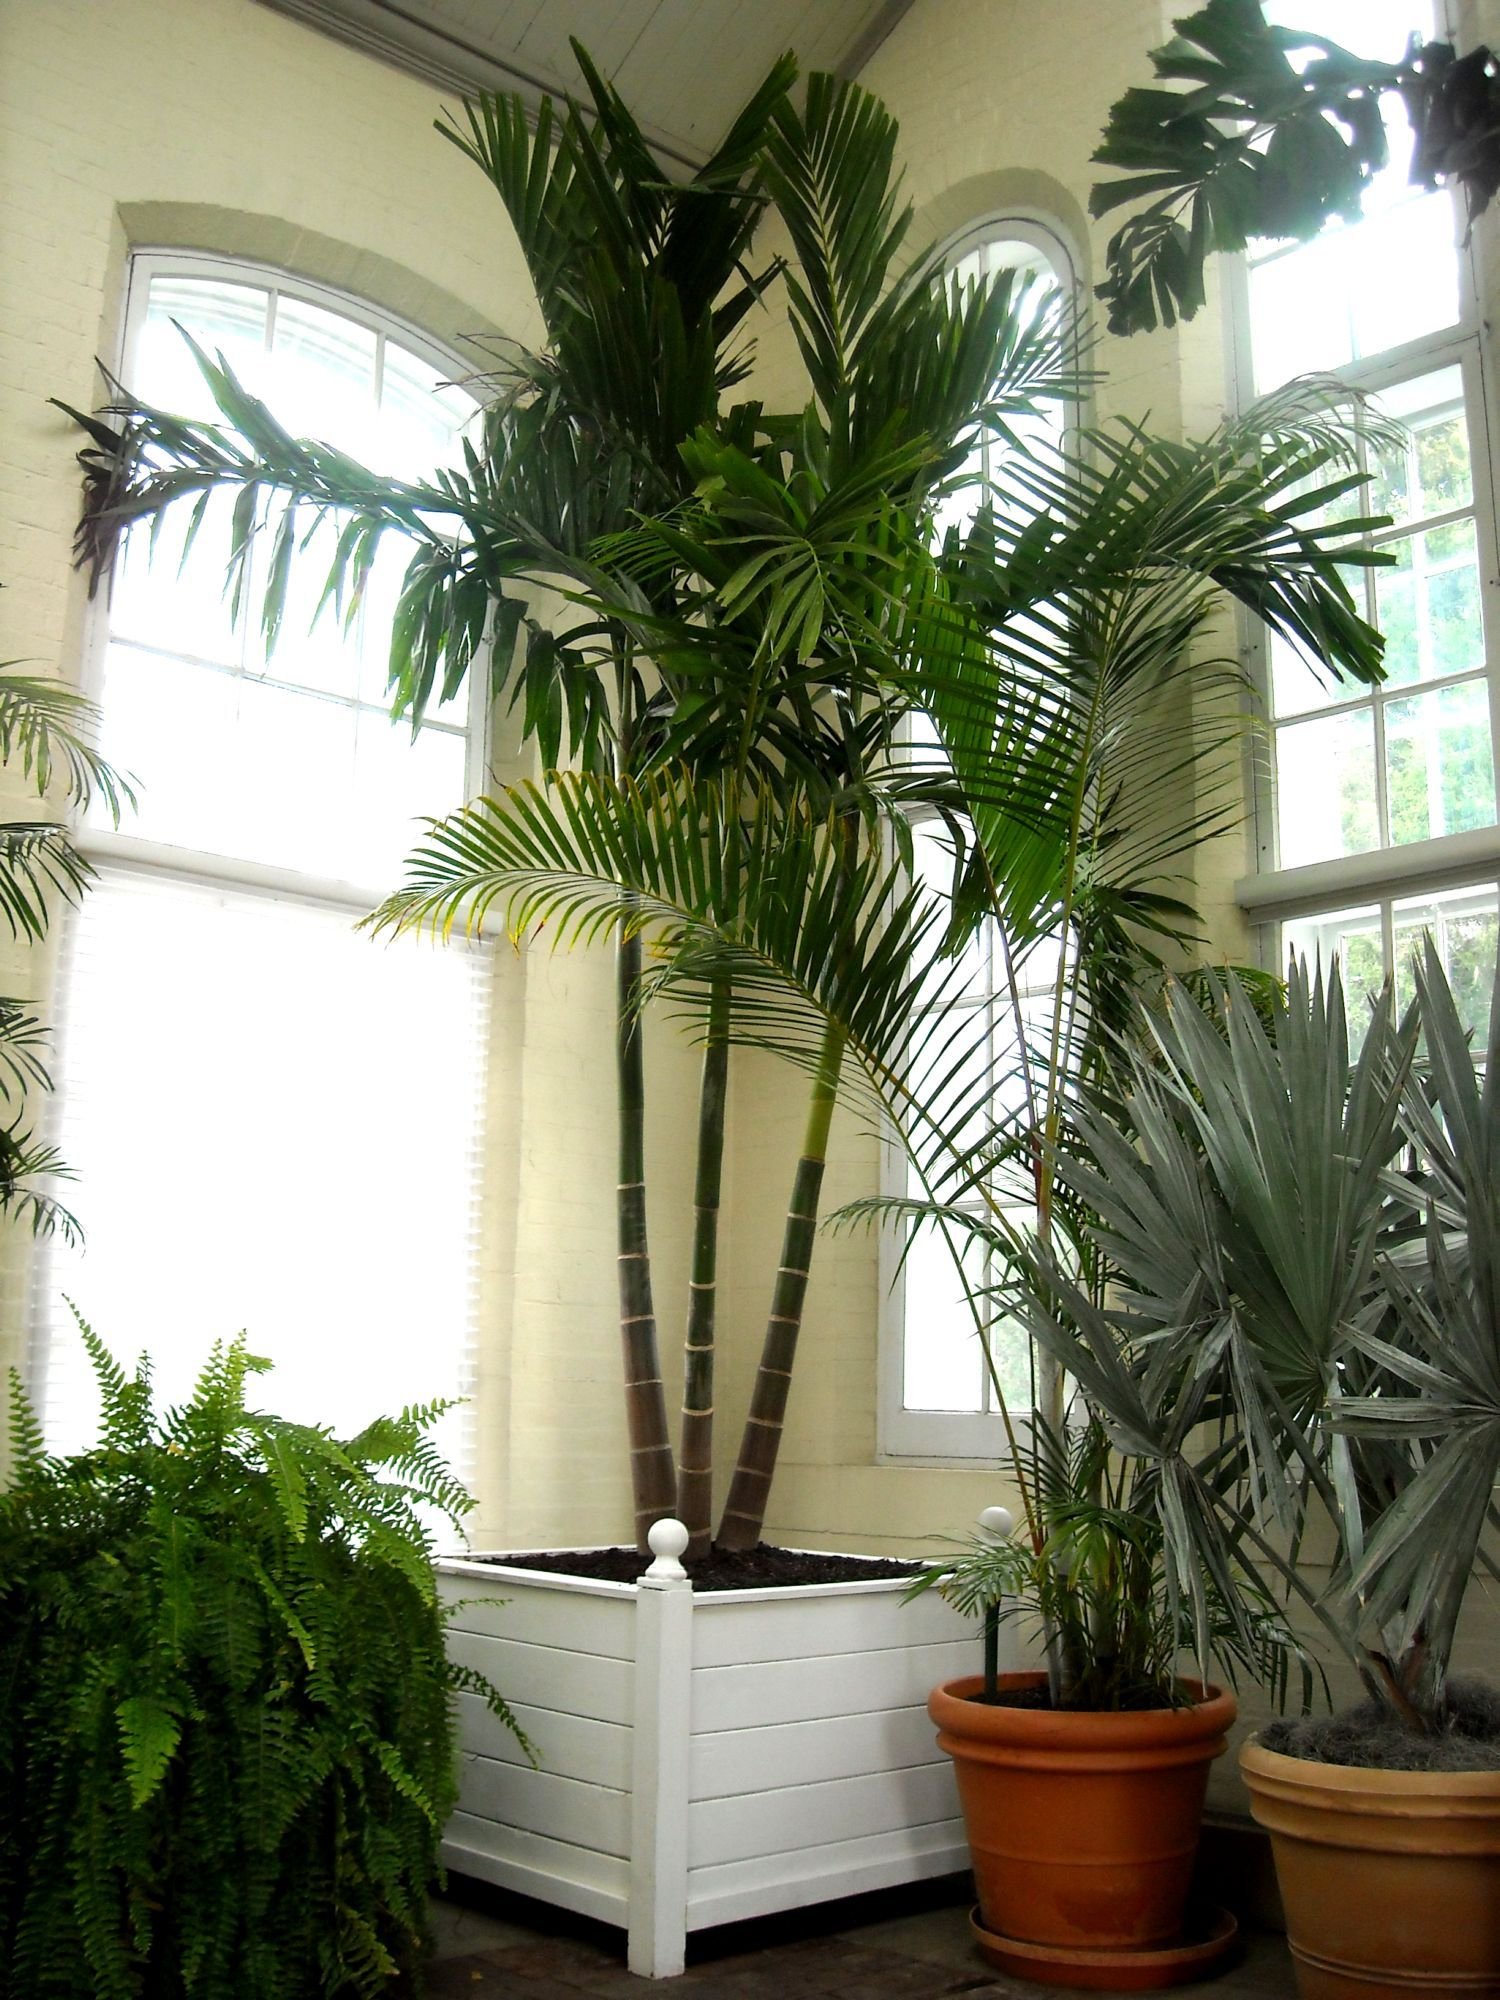 Decorative Indoor Trees Indoor Palms Buy Real Palm Trees Like This By Visiting Our